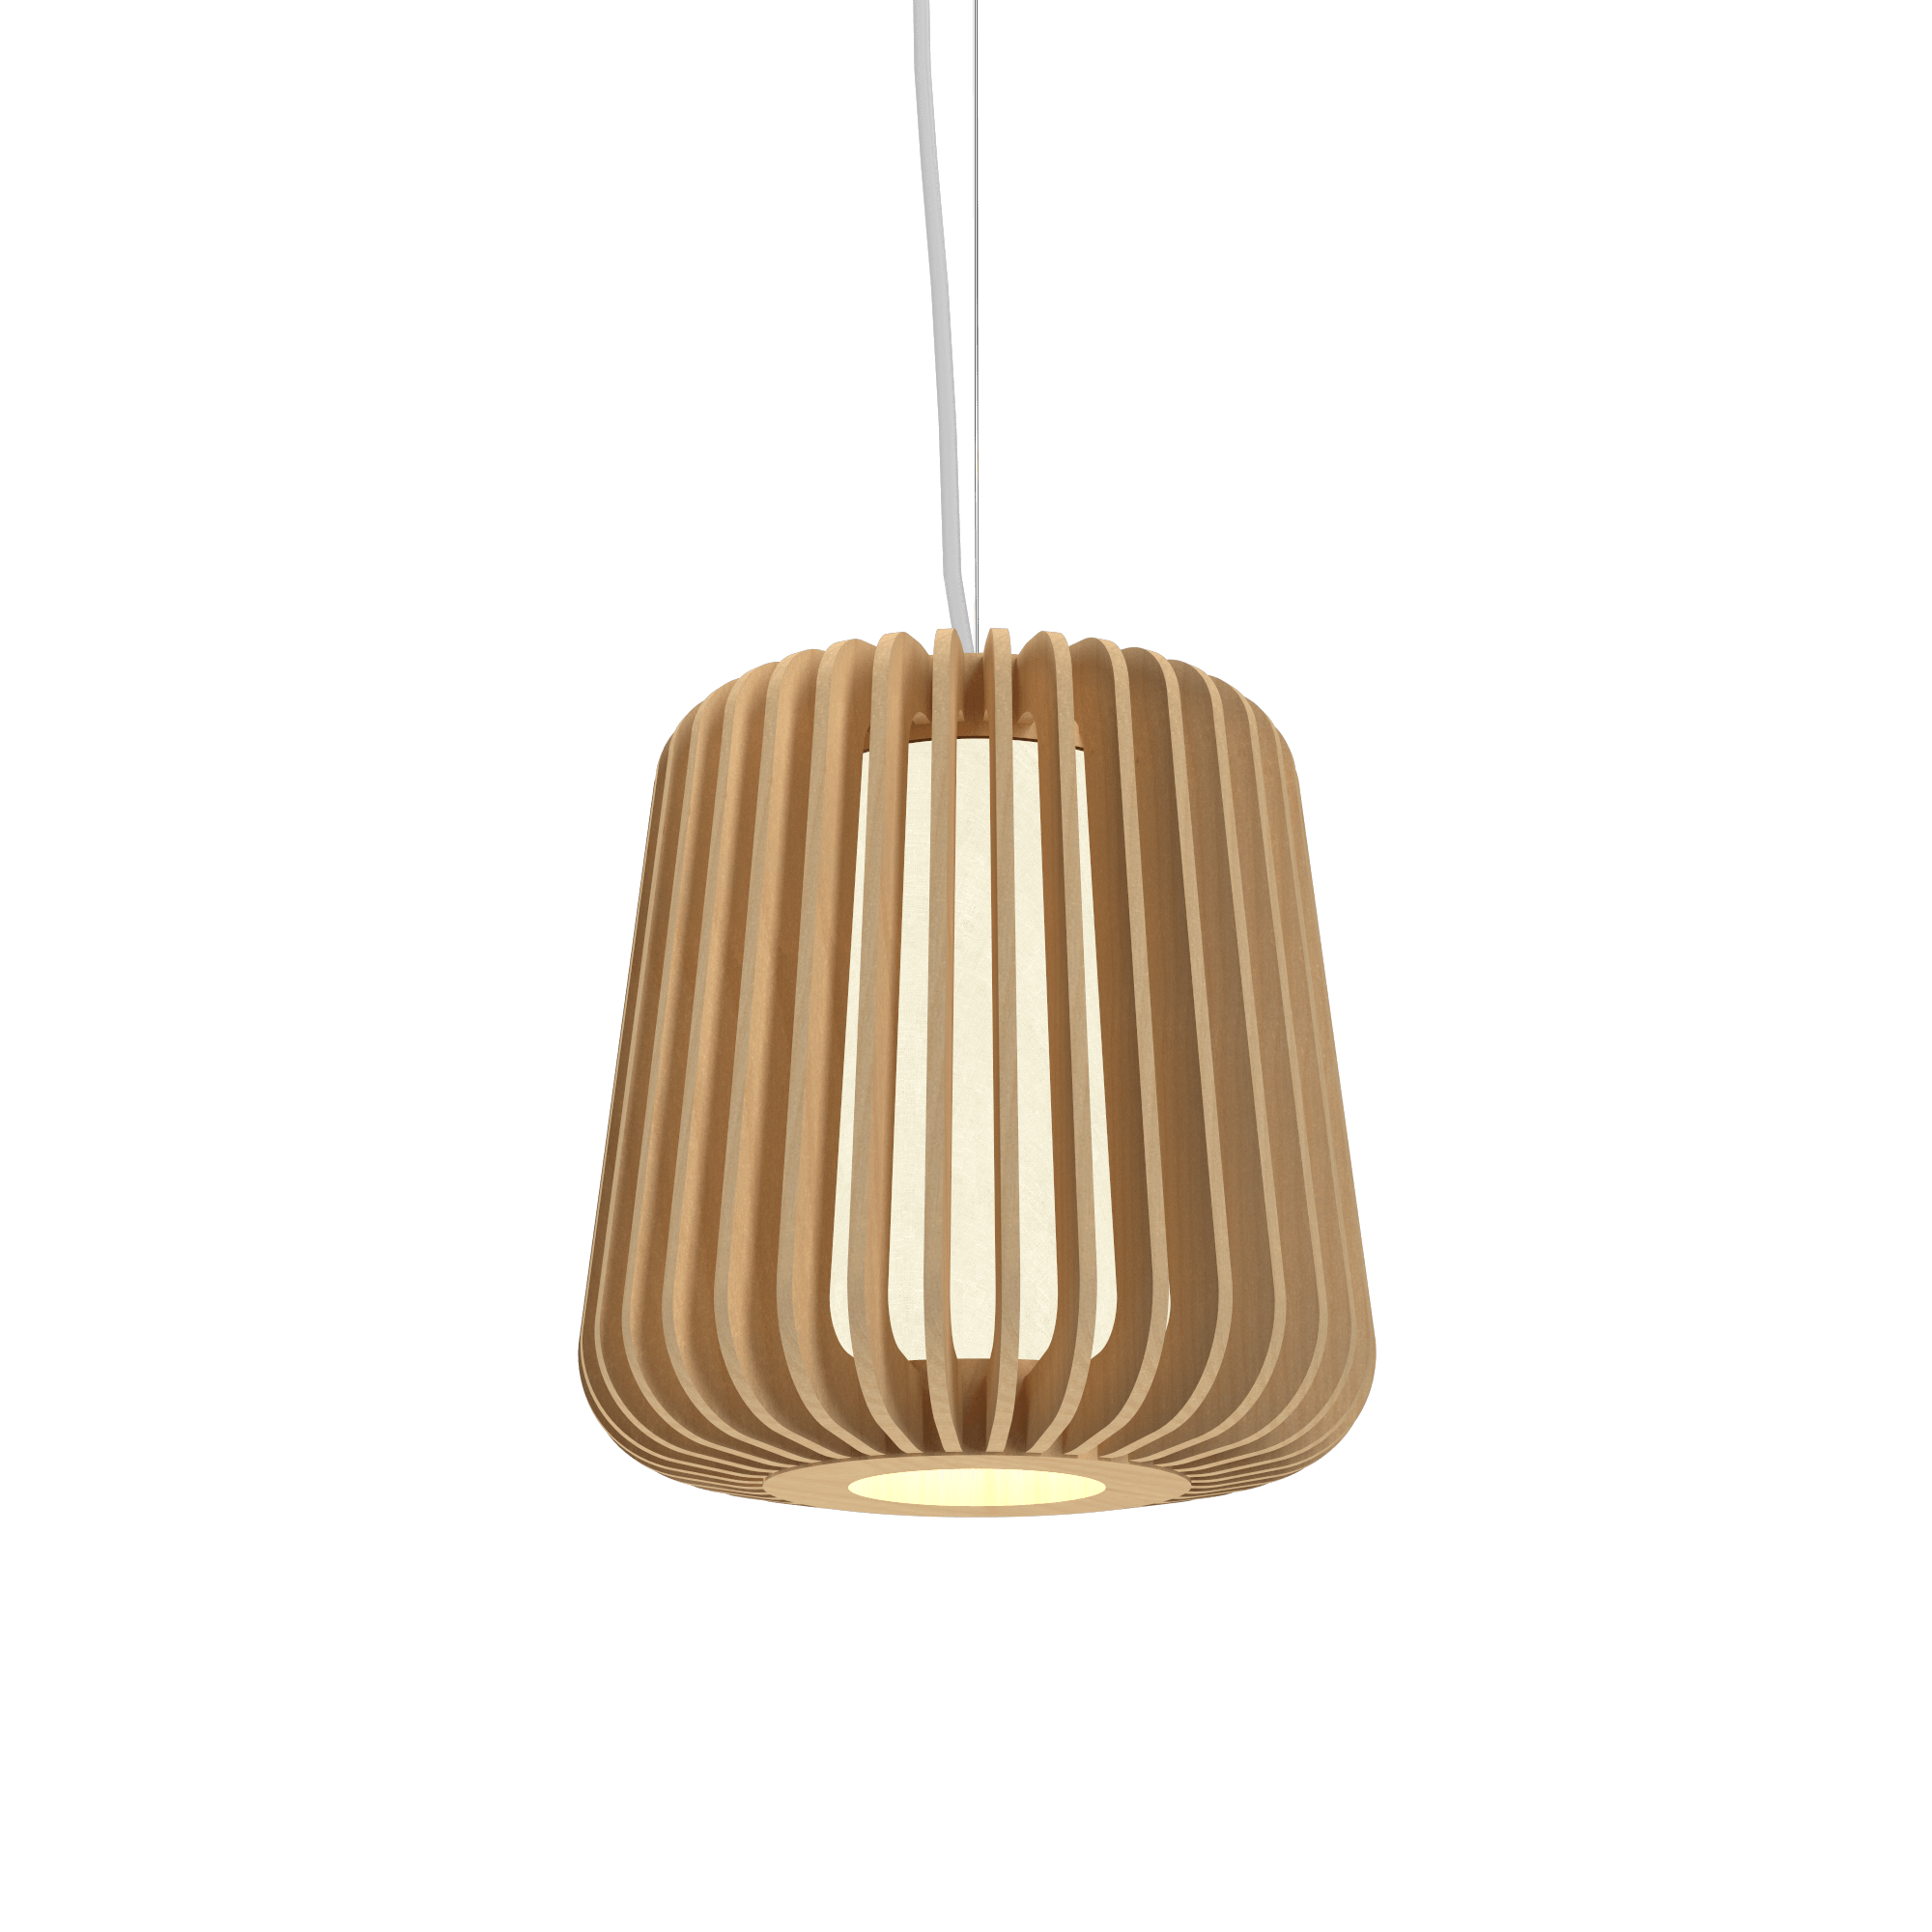 Pendant Lamp Accord Stecche Di Legno 1426 - Stecche Di Legno Line Accord Lighting | 34. Maple